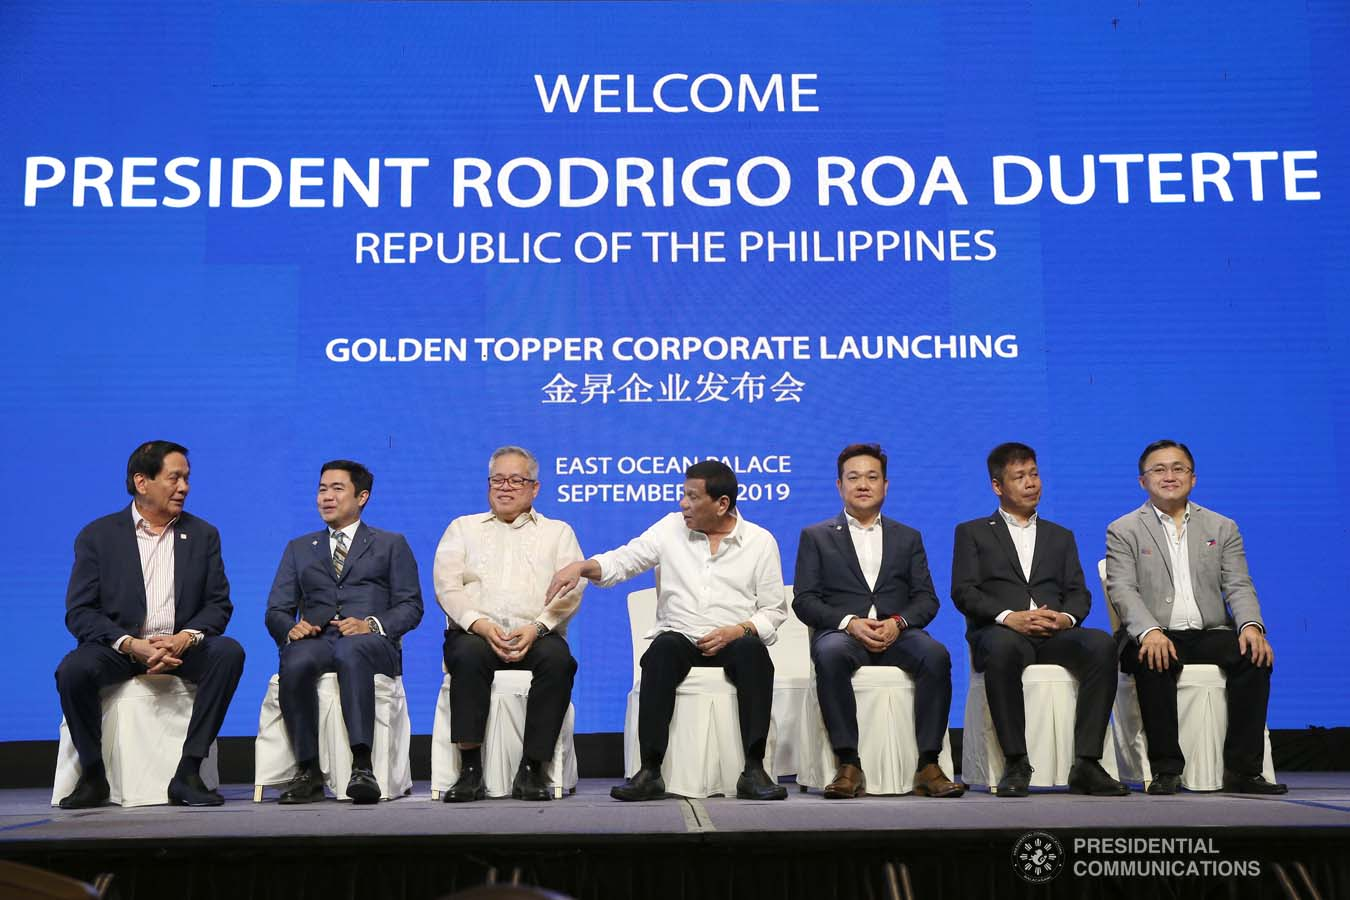 President Rodrigo Roa Duterte is joined on stage by Trade and Industry Secretary Ramon Lopez, the officials of the Golden Topper Group Inc., and other distinguished guests during the Golden Topper Corporate Launch at the Aseana Business Park in Parañaque City on September 25, 2019. ALBERT ALCAIN/PRESIDENTIAL PHOTO